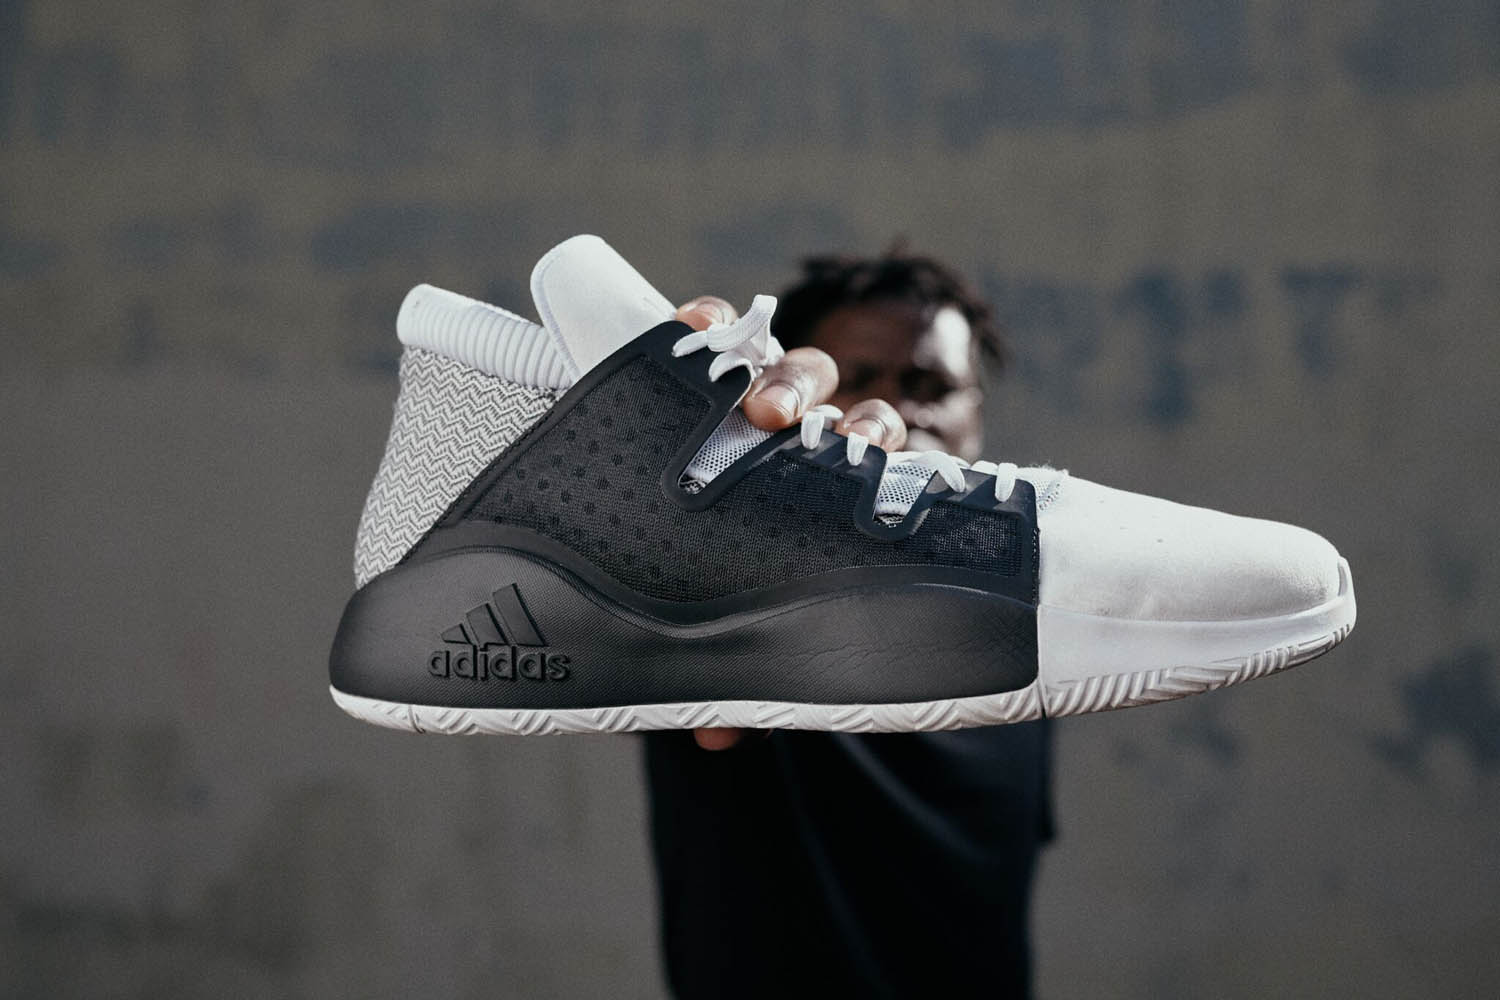 9c27216d703f adidas-Pro-Vision-Official-1 - WearTesters